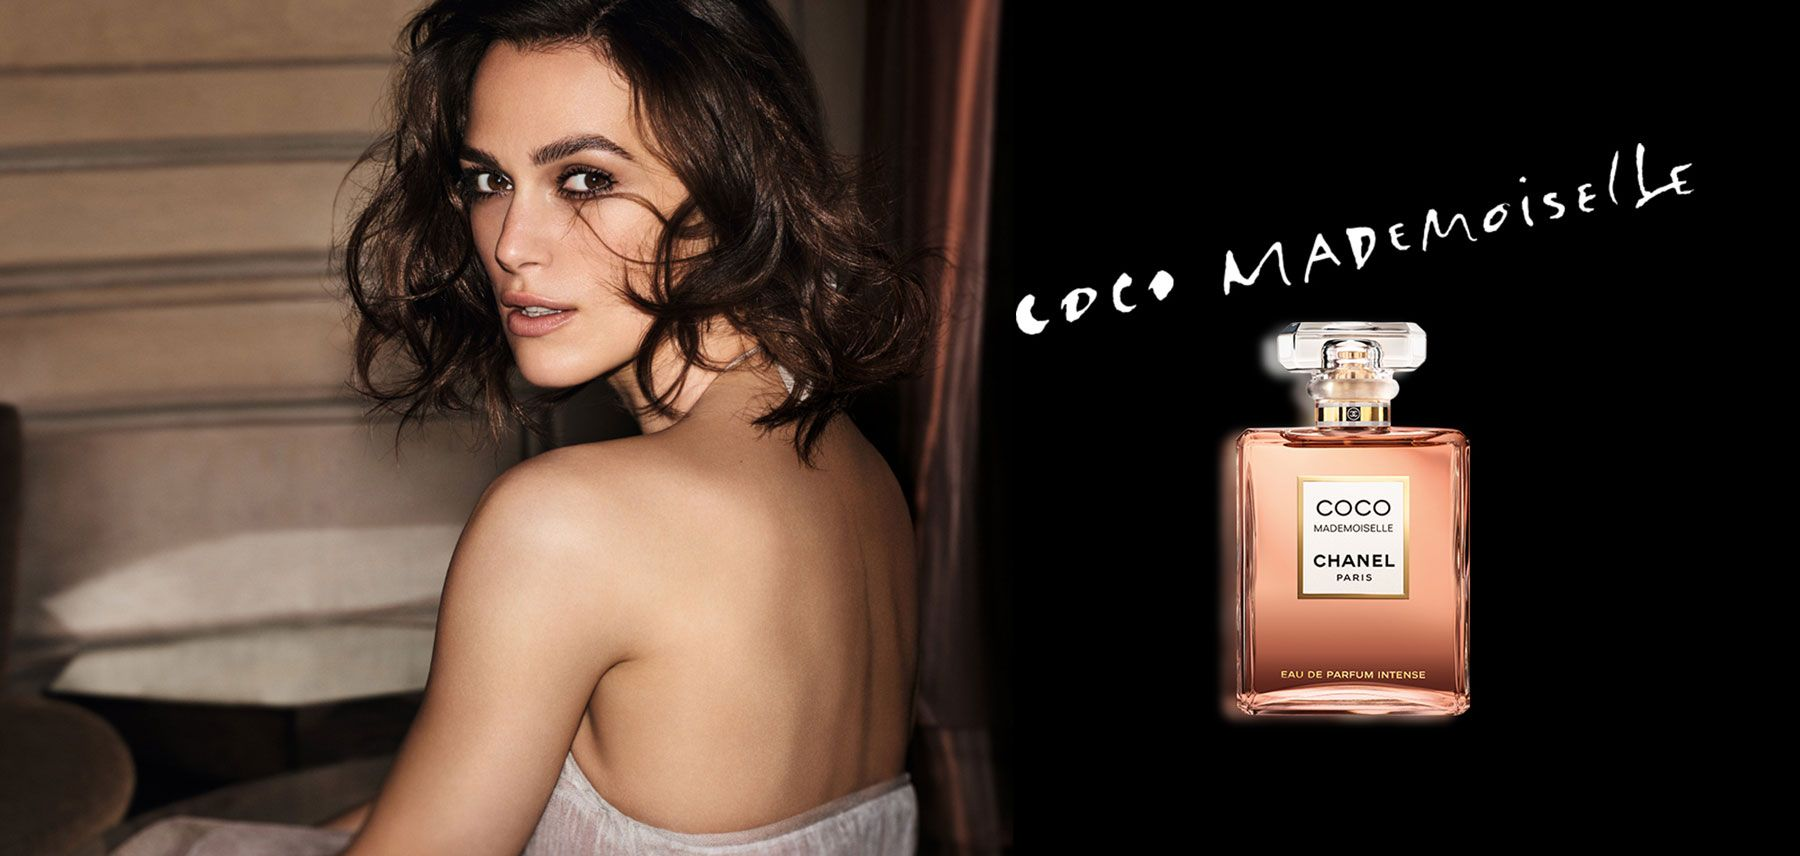 Coco Madmoiselle